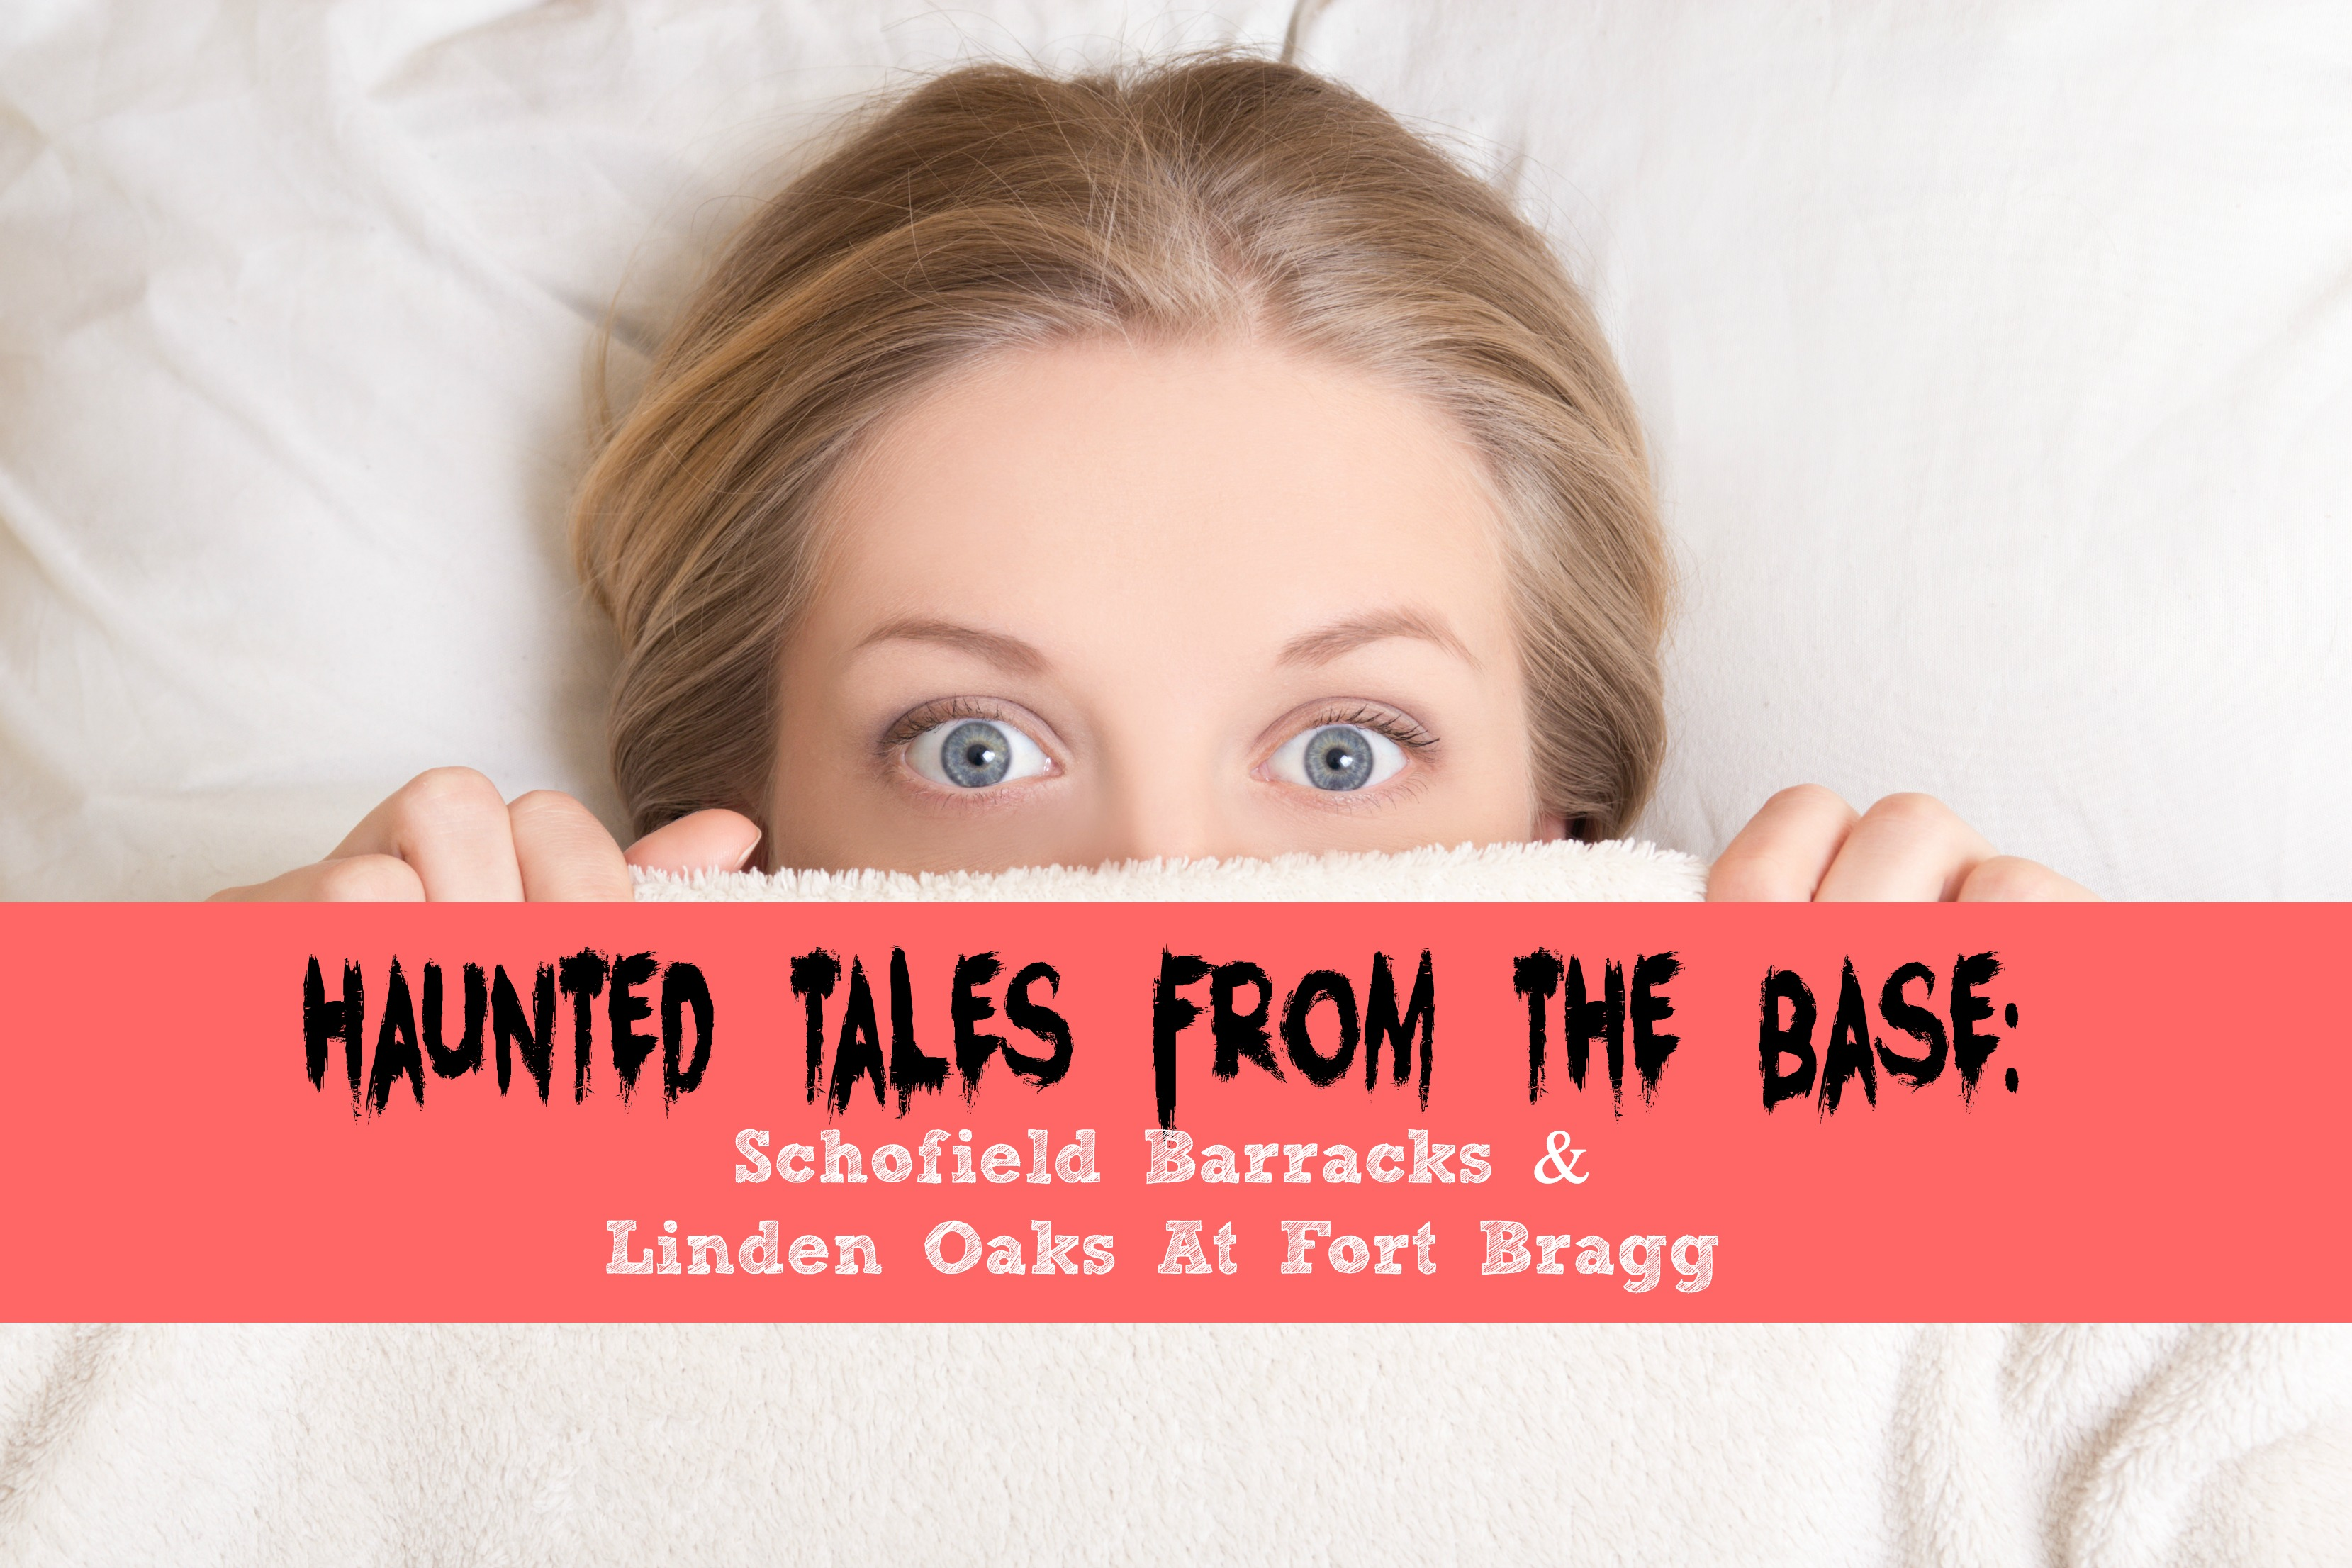 Haunted Tales From The Base: Schofield Barracks & Linden Oaks